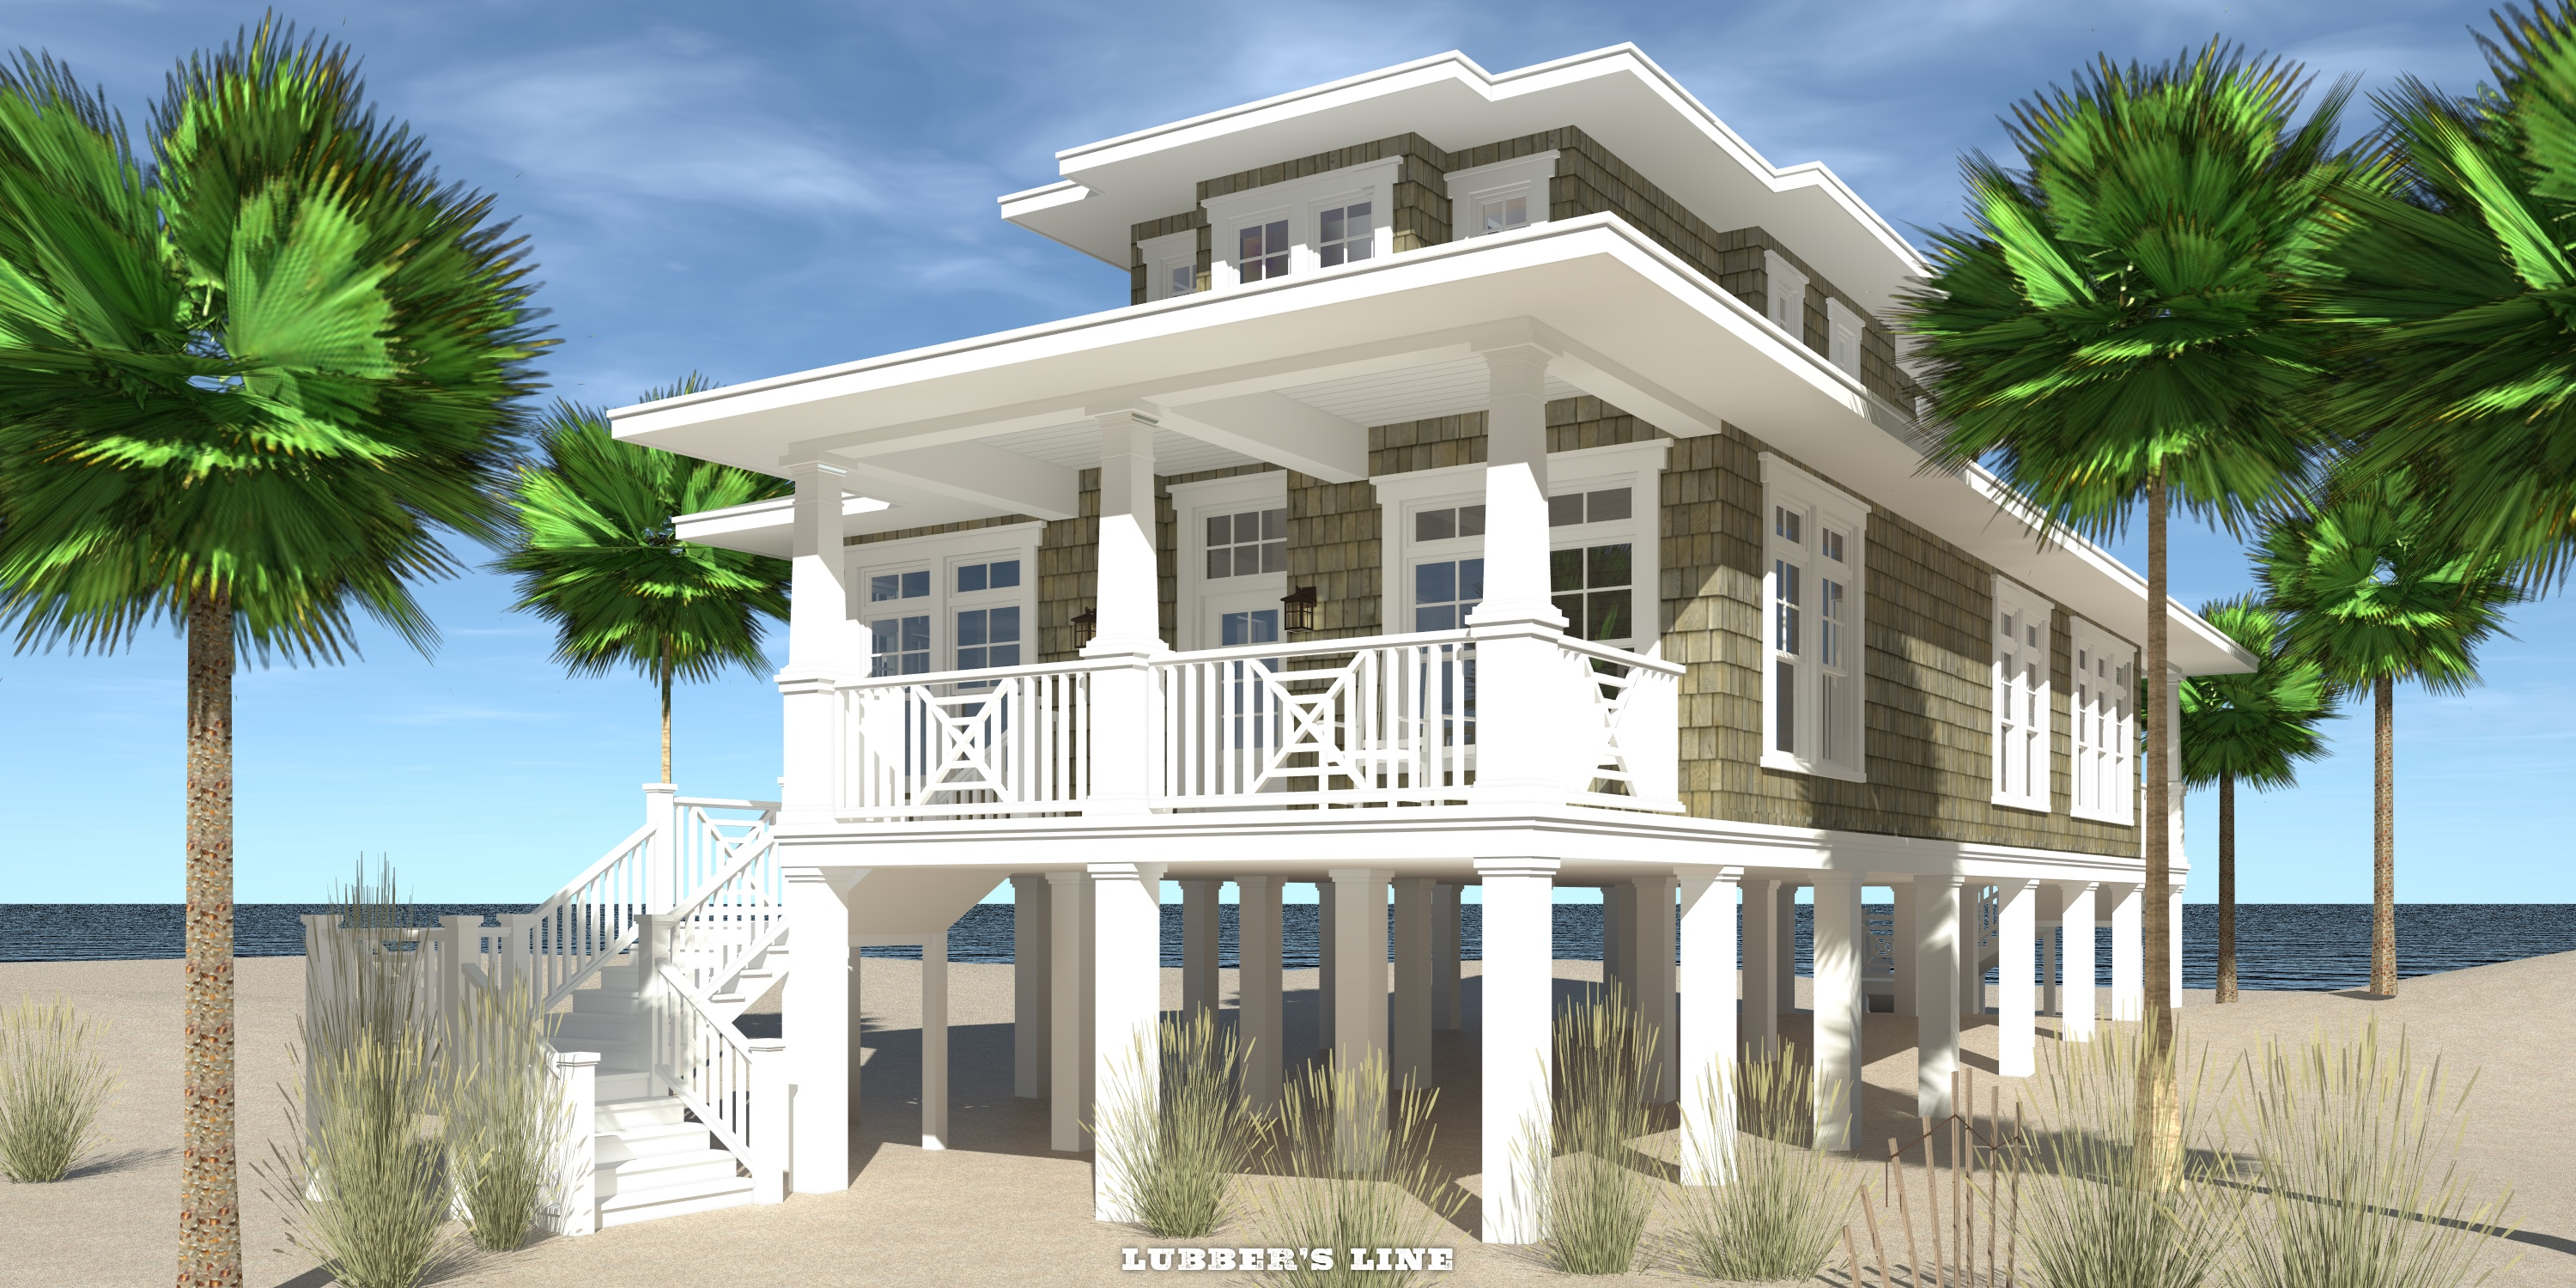 Beach house plans with front view for Coastal beach house plans